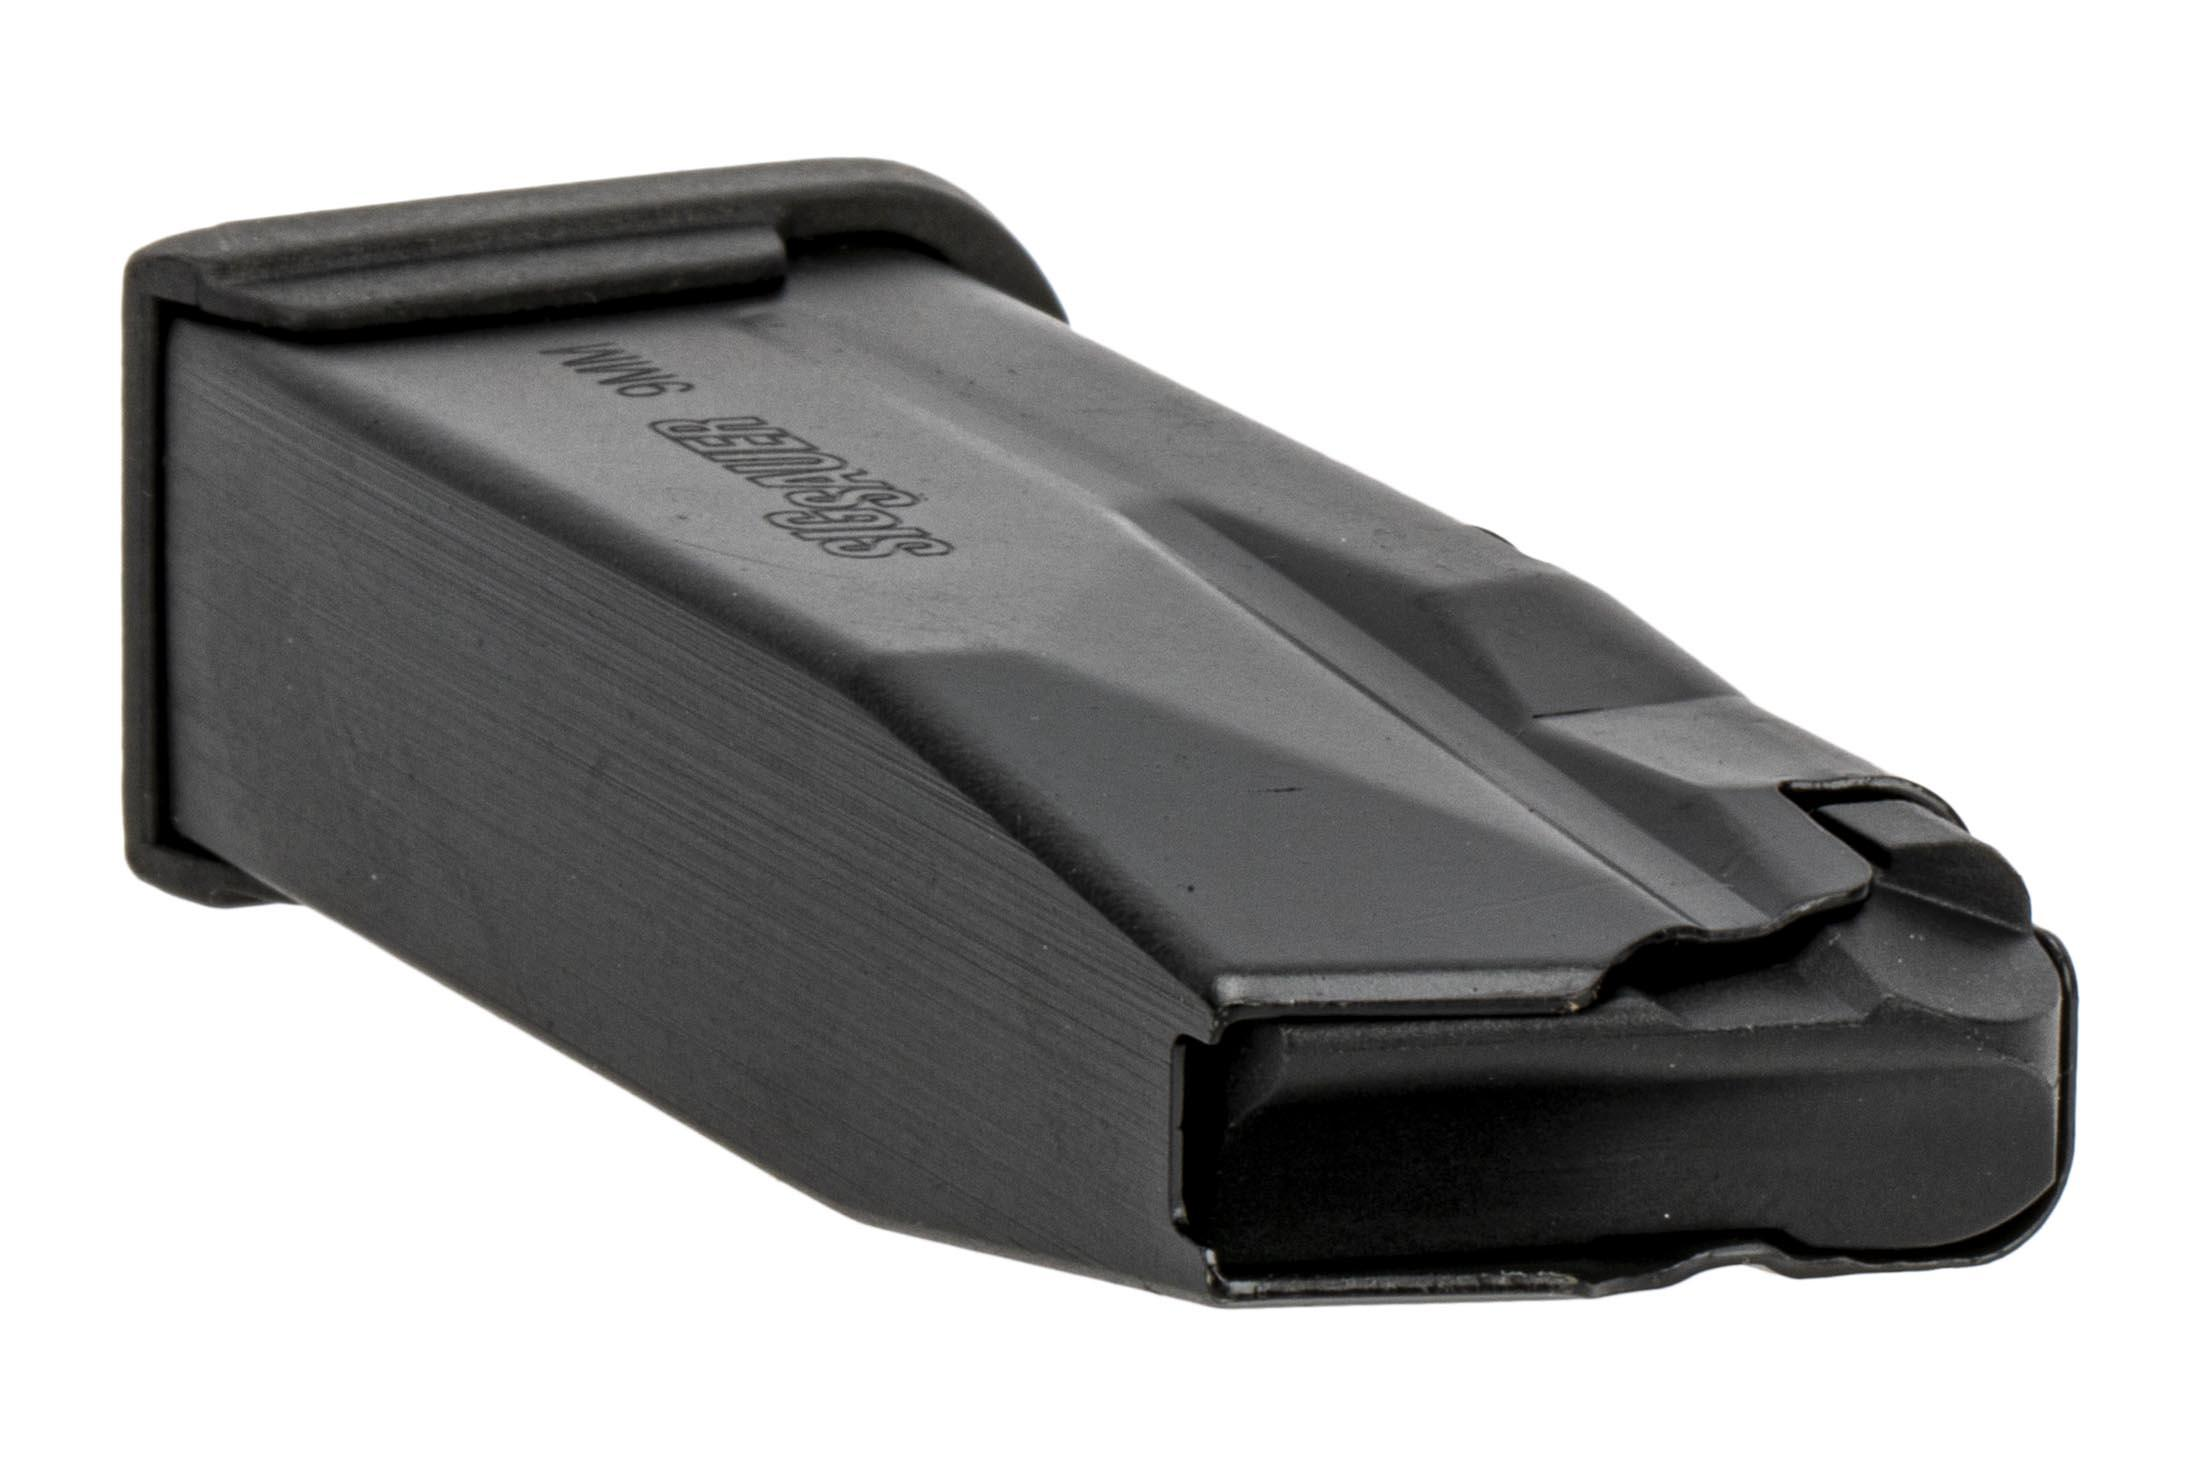 SIG Sauer P365 magazine is a full capacity 9mm magazine that holds 10-rounds.